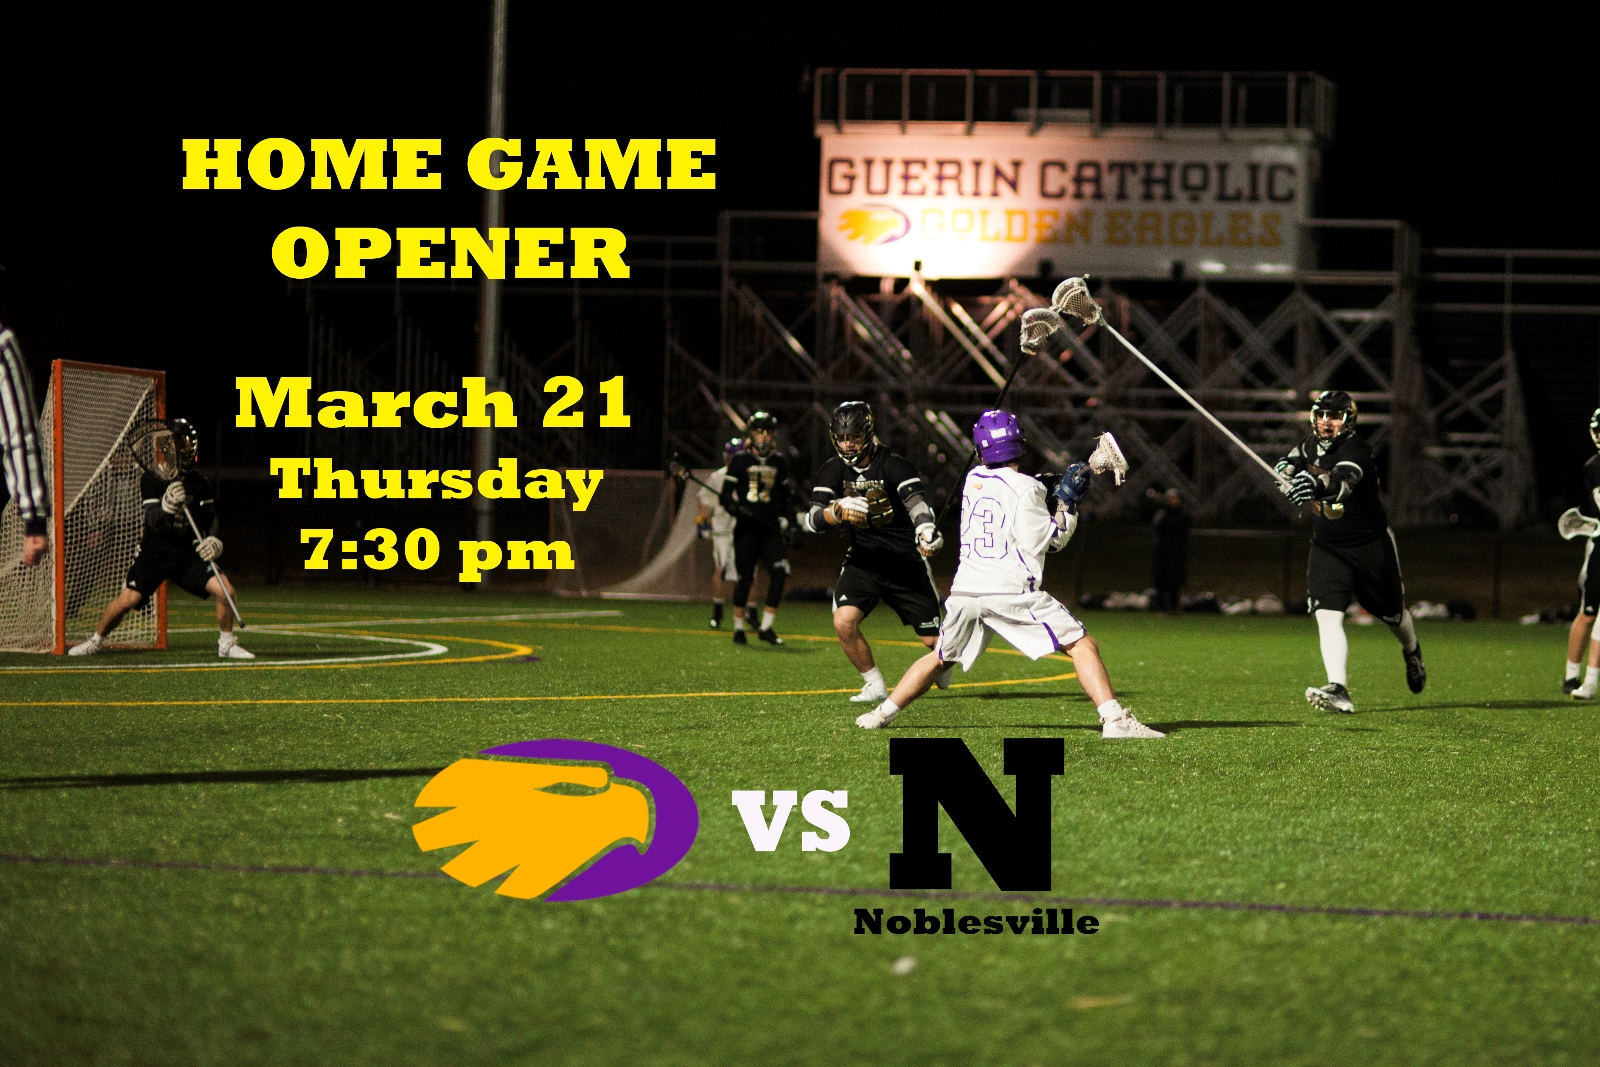 Home Game Opener – March 21st (Thurs.) vs Noblesville Millers